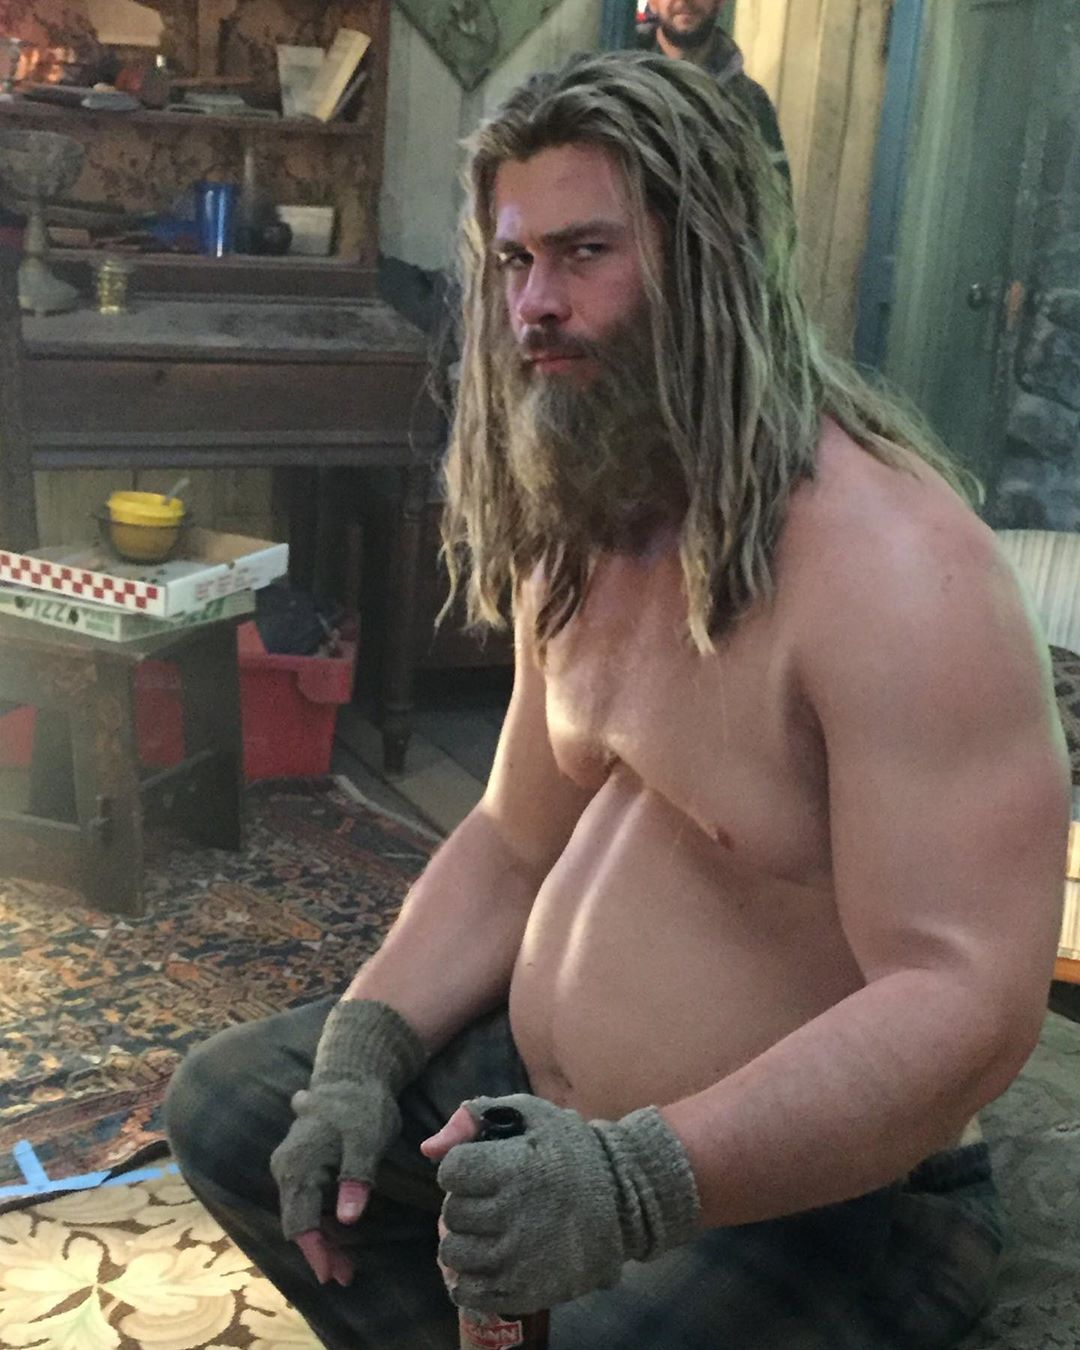 Thor: Love and Thunder: Will Avengers: Endgame's Fat Thor version make it to the film? Taika Waititi REVEALS